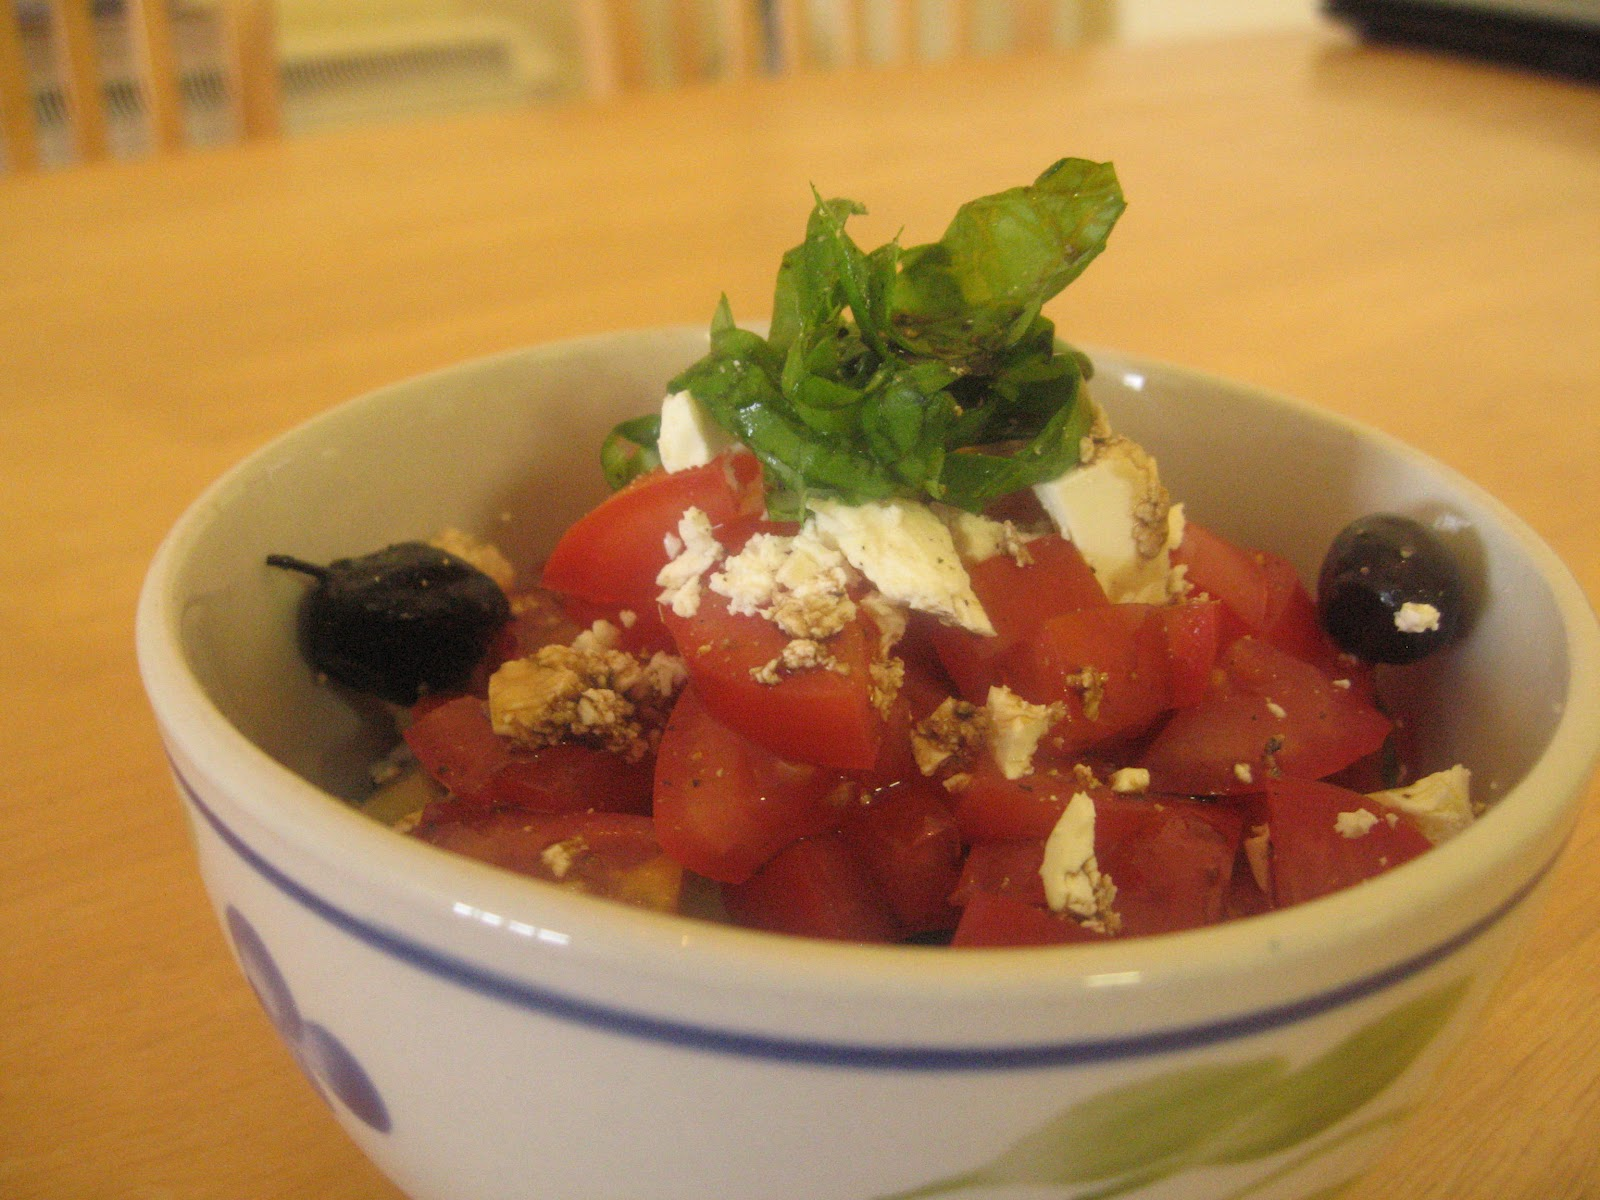 Easy Cucumber and Tomato Salad with basil, olives and feta @ What's for Dinner